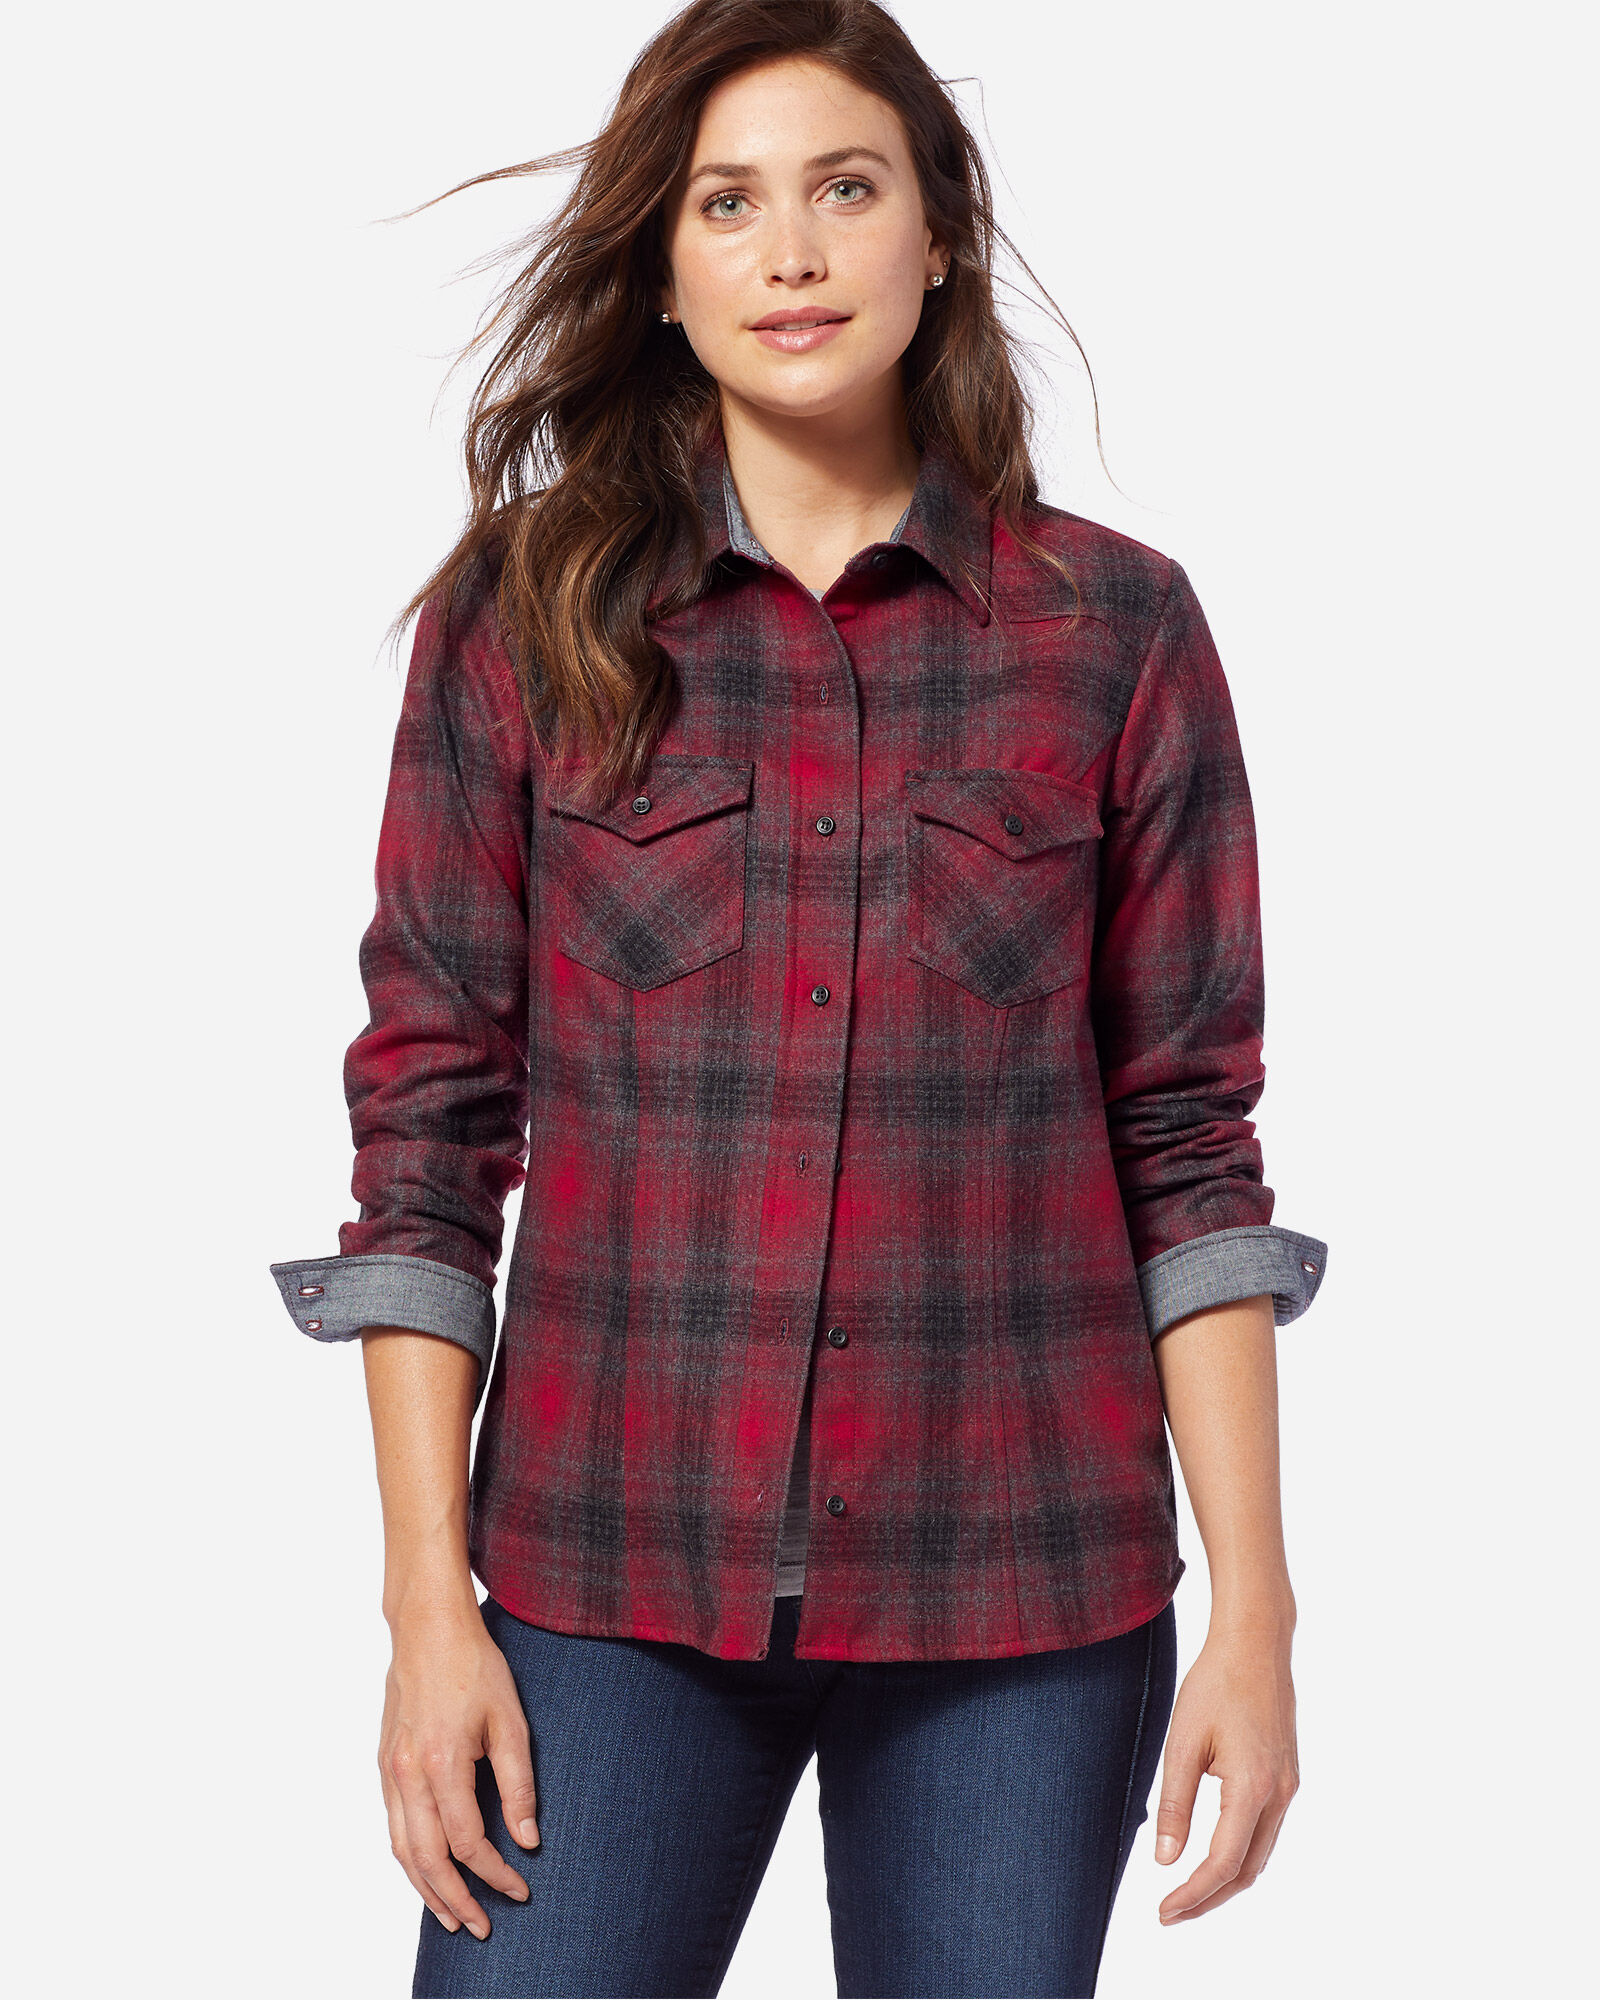 2019 year for women- Tartan and plaid shirts for women